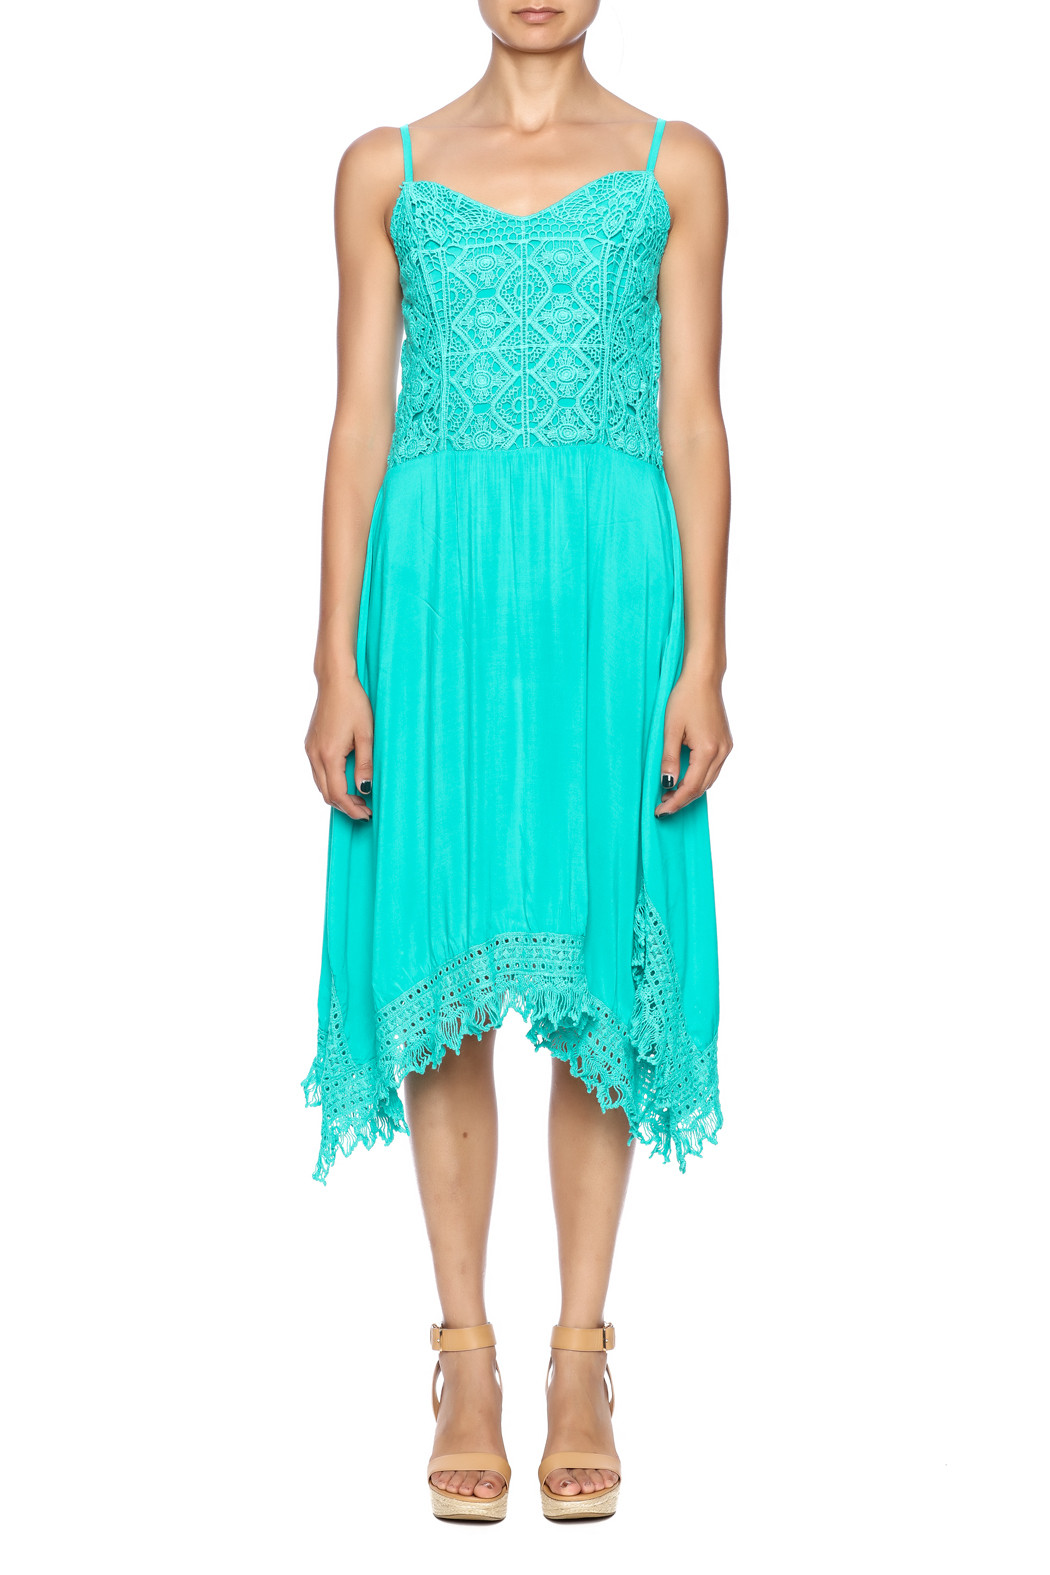 Monoreno Turquoise Crochet Dress from Tennessee by